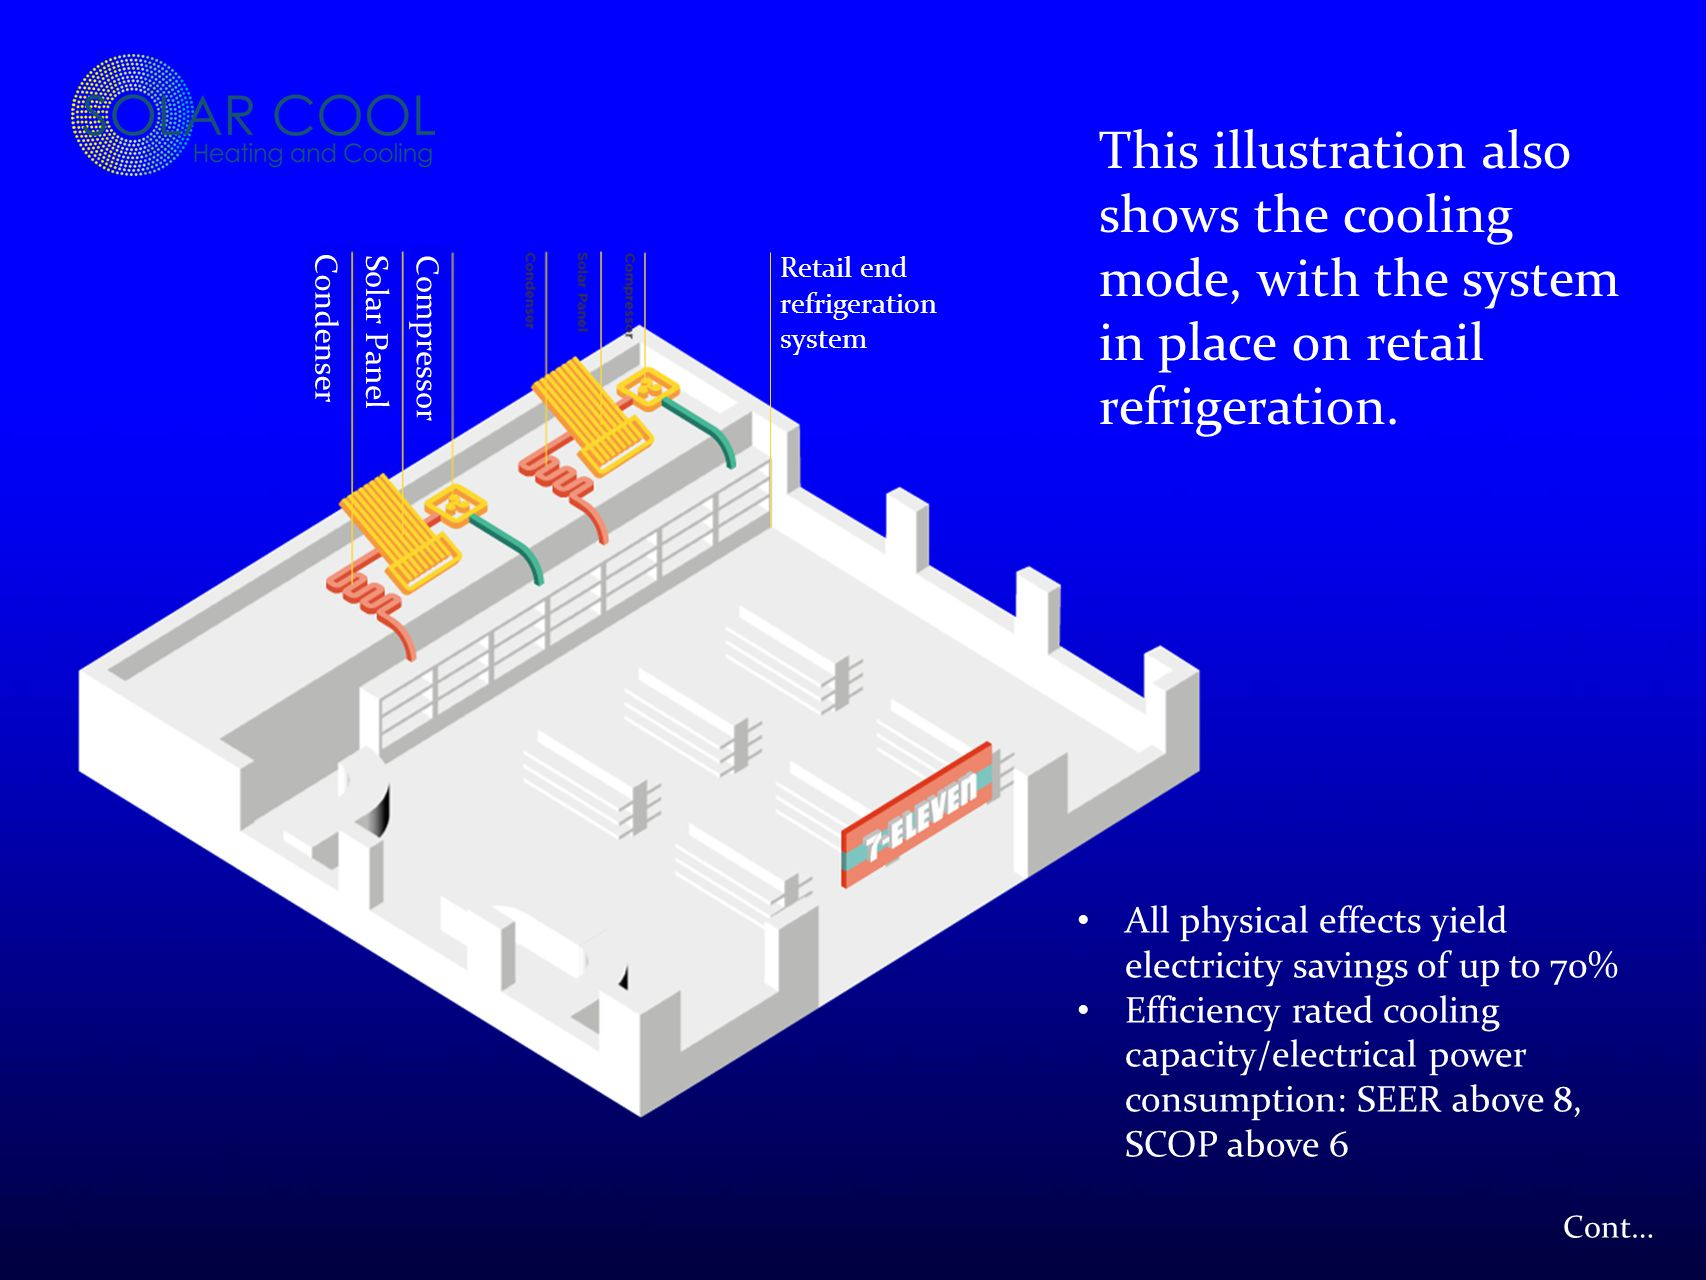 Cont… Condenser Solar PanelCompressor Retail end refrigeration system This illustration also shows the cooling mode, with the system in place on retail refrigeration.